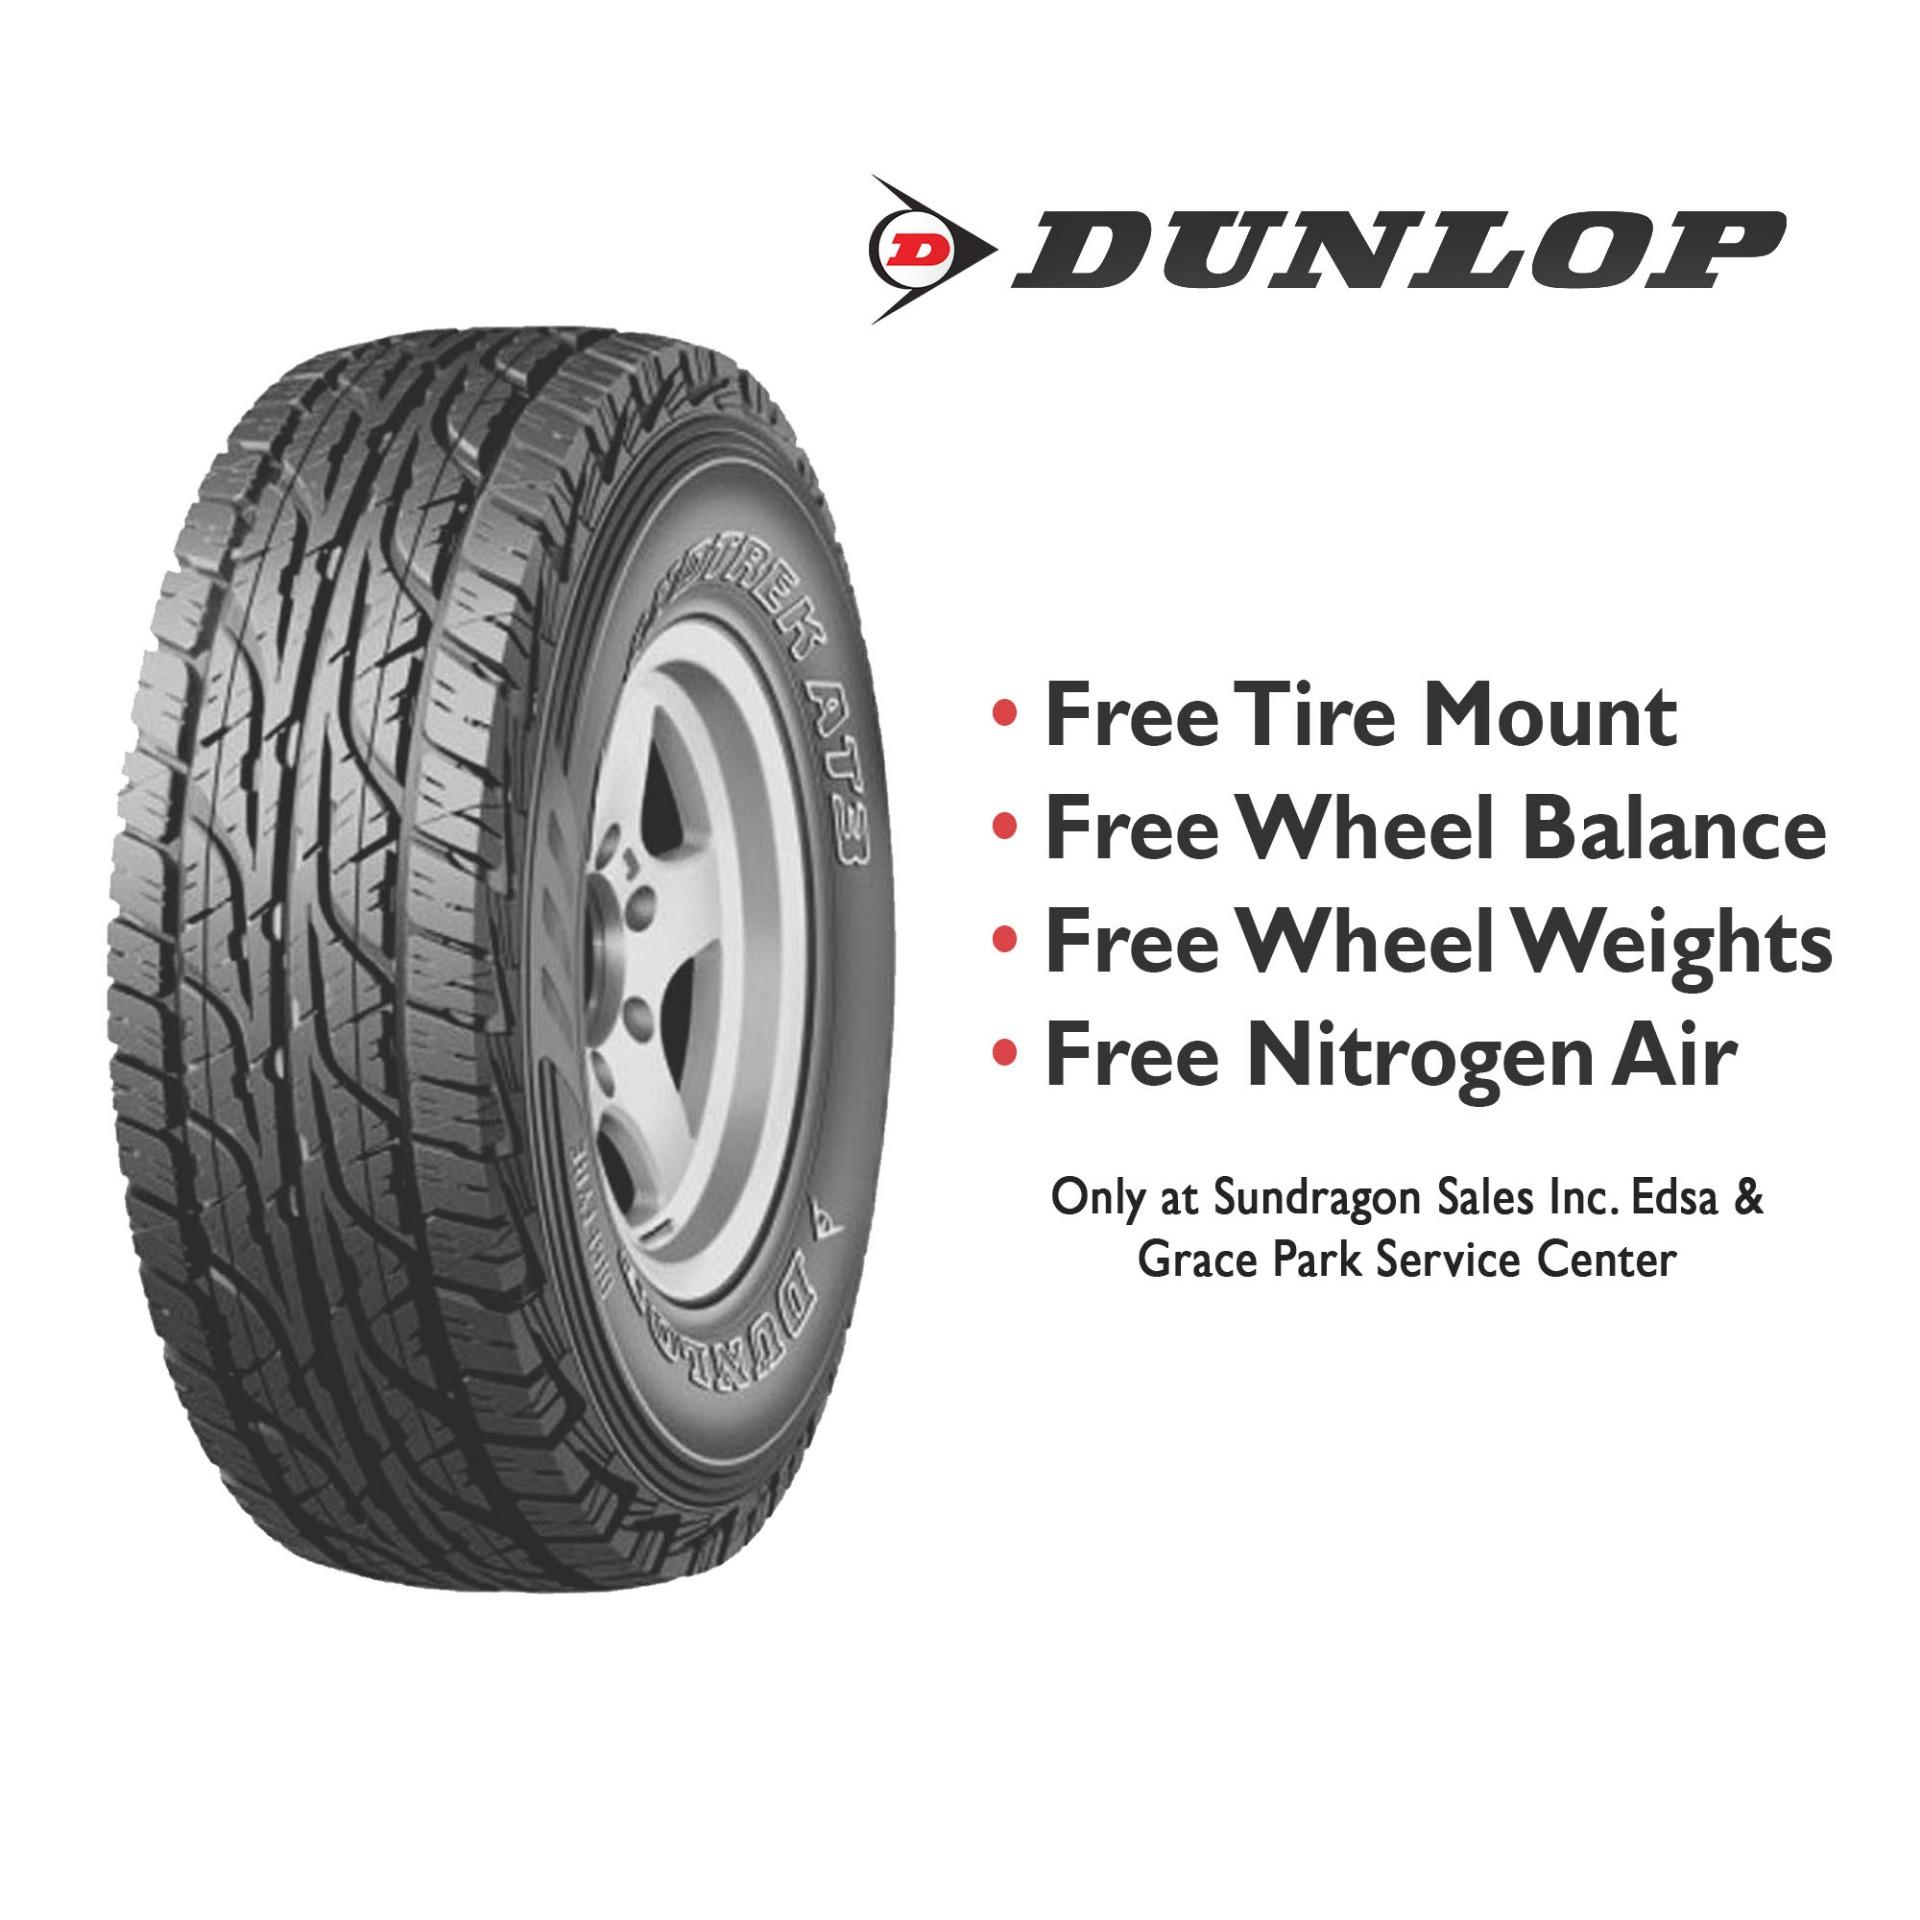 Dunlop Direzza Dz102 Review >> Dunlop Direzza Dz102 Review | News of New Car Release